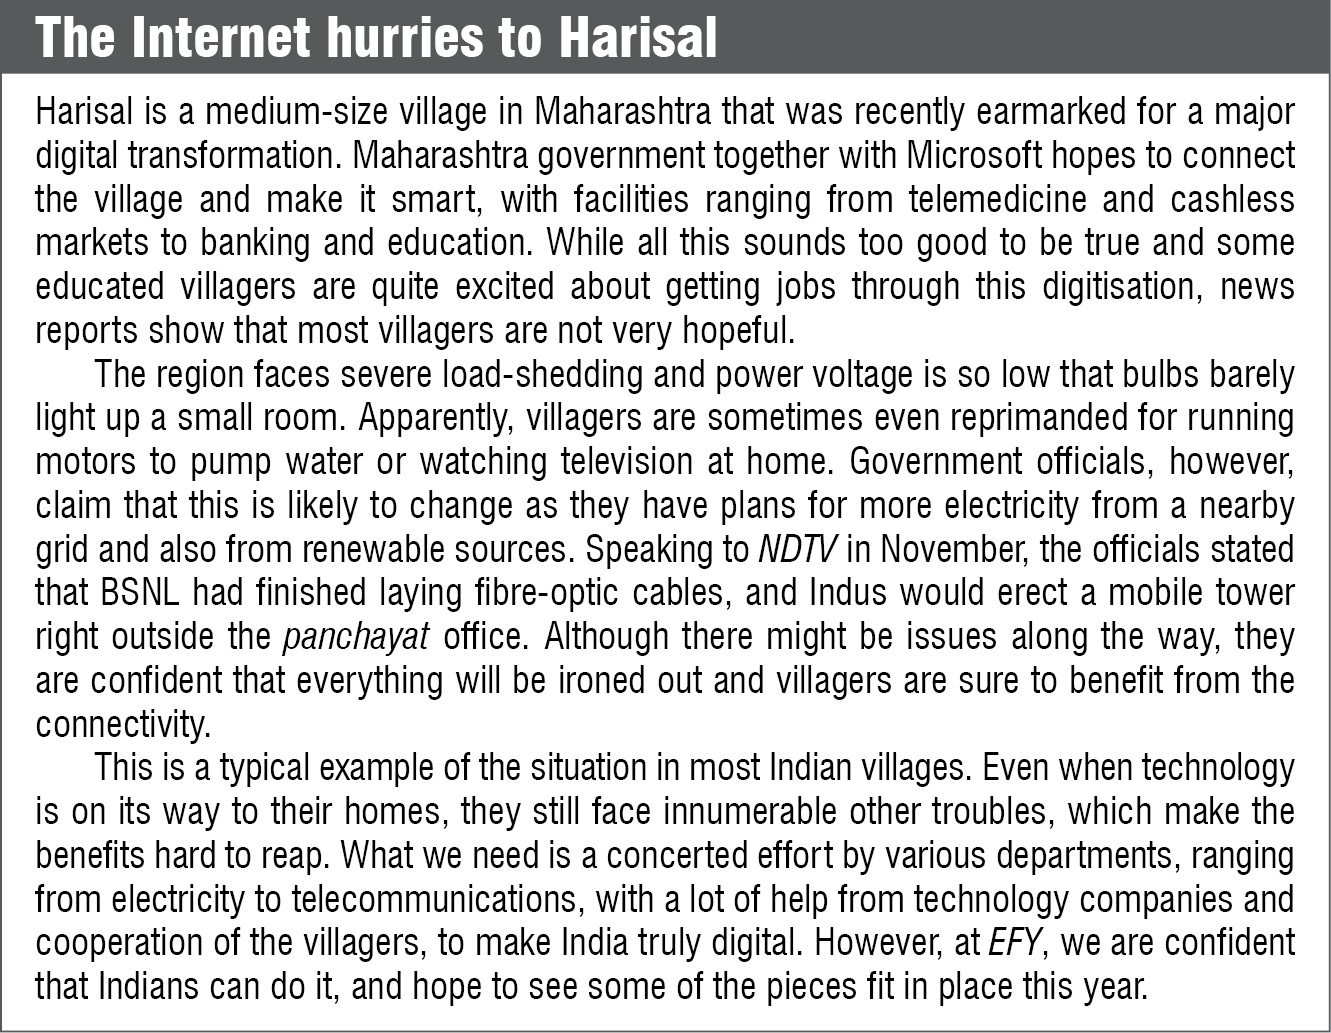 The Internet hurries to Harisal